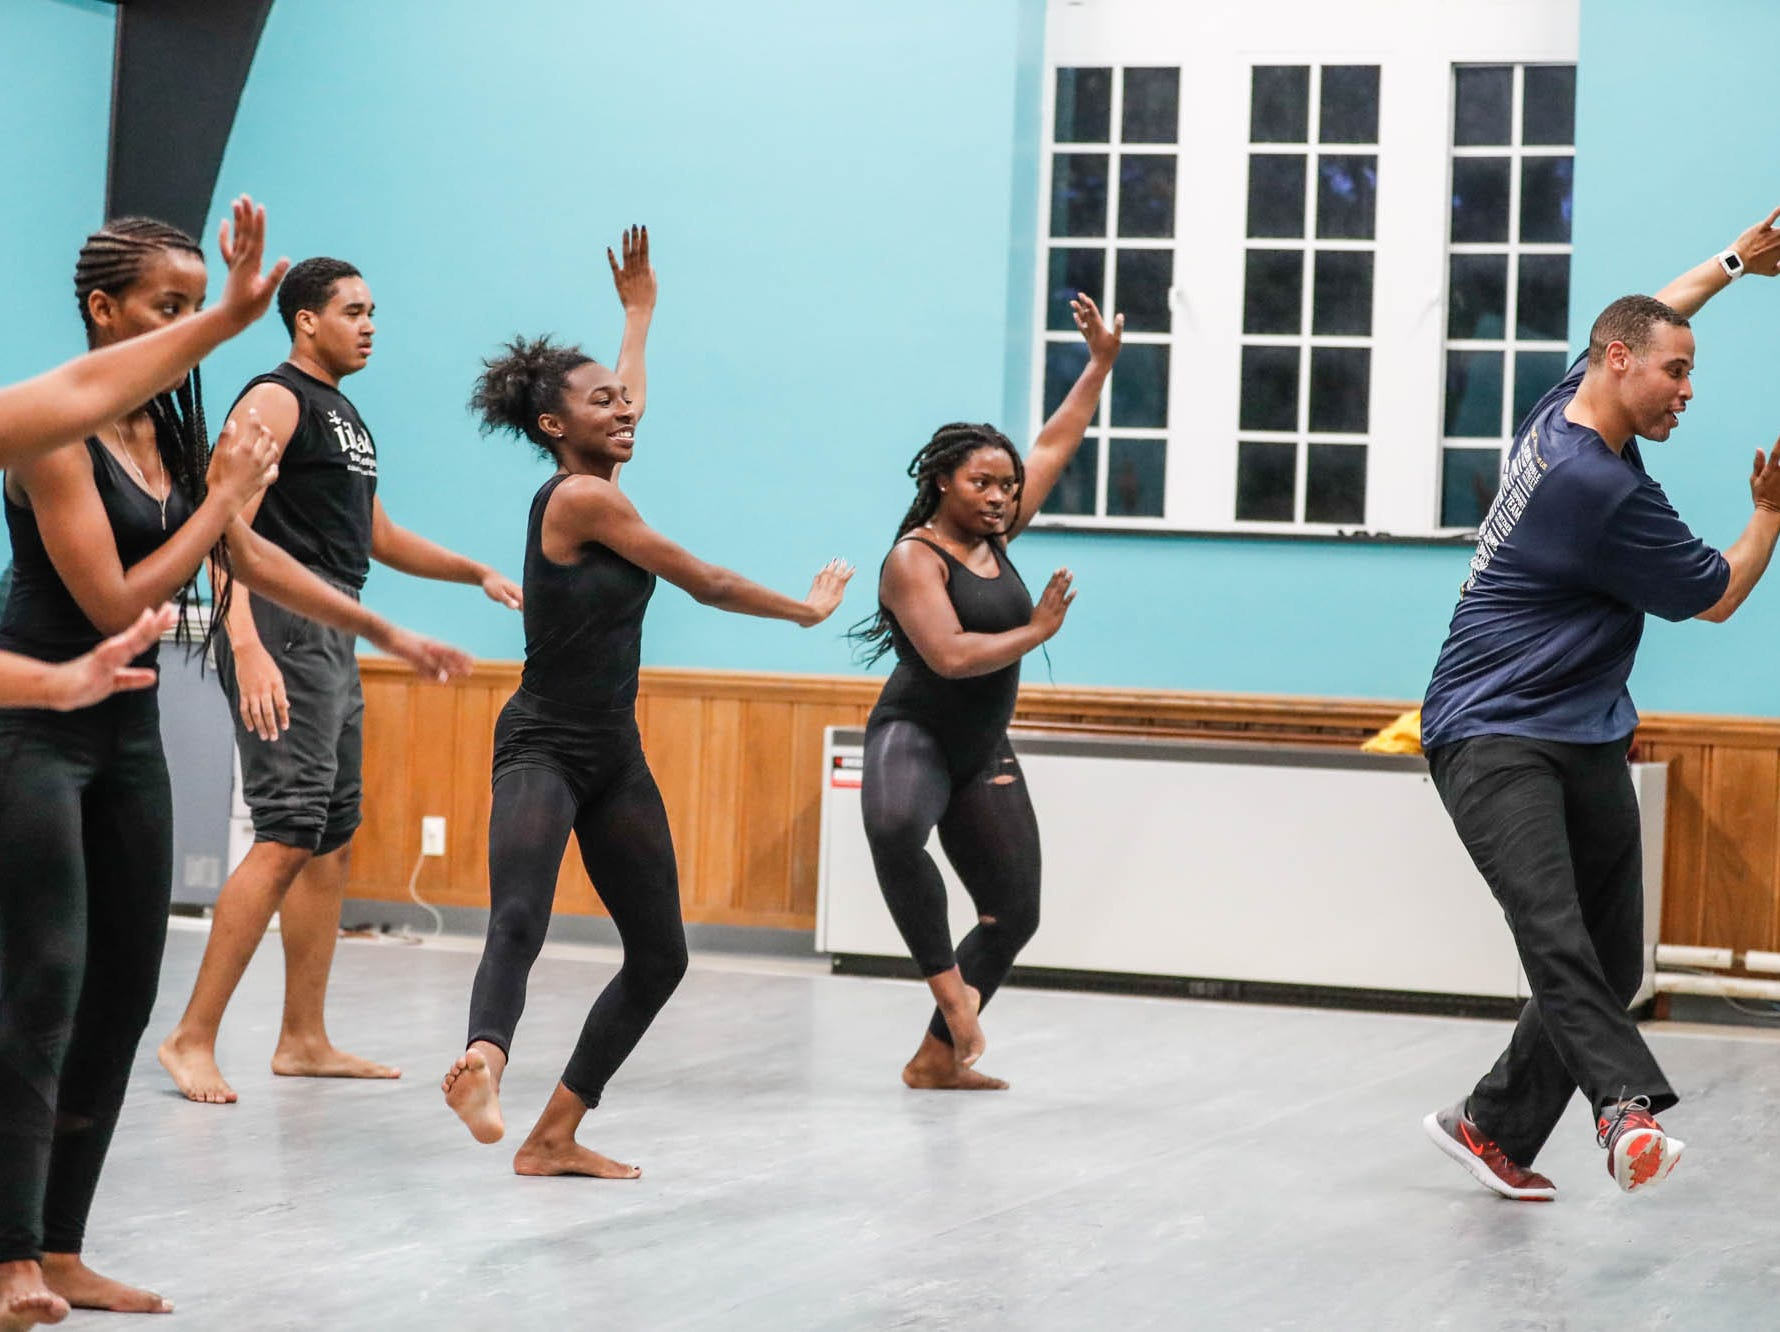 Senior Program Director, Roland Smith, right, teaches students dance moves during an Iibada Dance Company class at Broadway United Methodist Church in Indianapolis Ind. on Wednesday, Oct. 31, 2018. The children's nonprofit dance studio teaches cultural enrichment, discipline, and positive self-esteem through the art of dance.